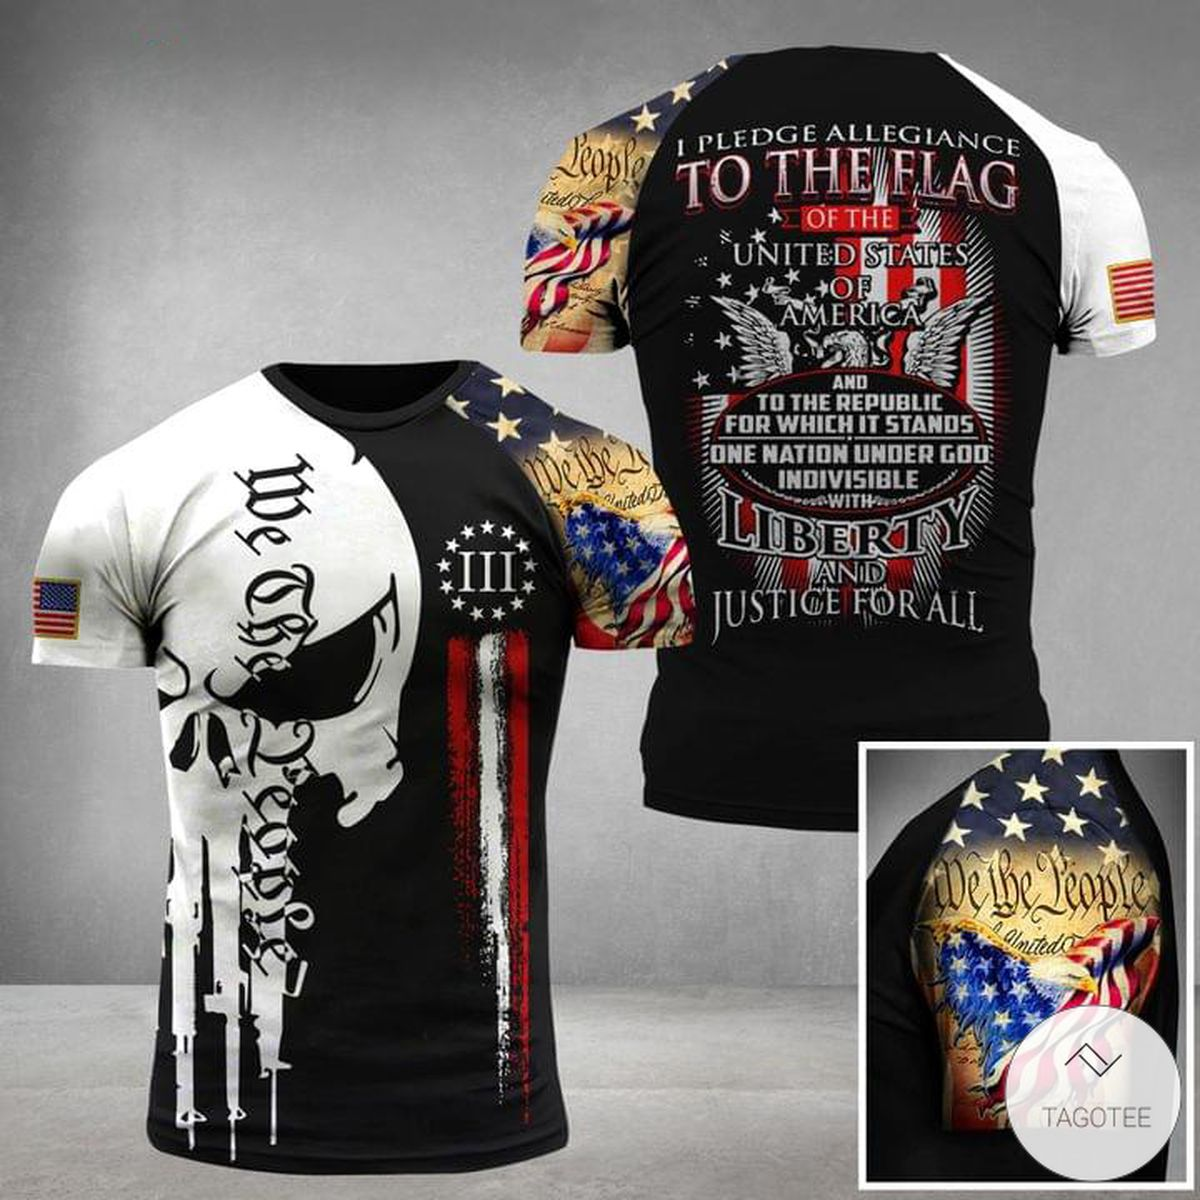 I Pledge Allegiance To The Flag Of The United States Of America Liberty And Justice For All Military Skull Military 3D T-shirt